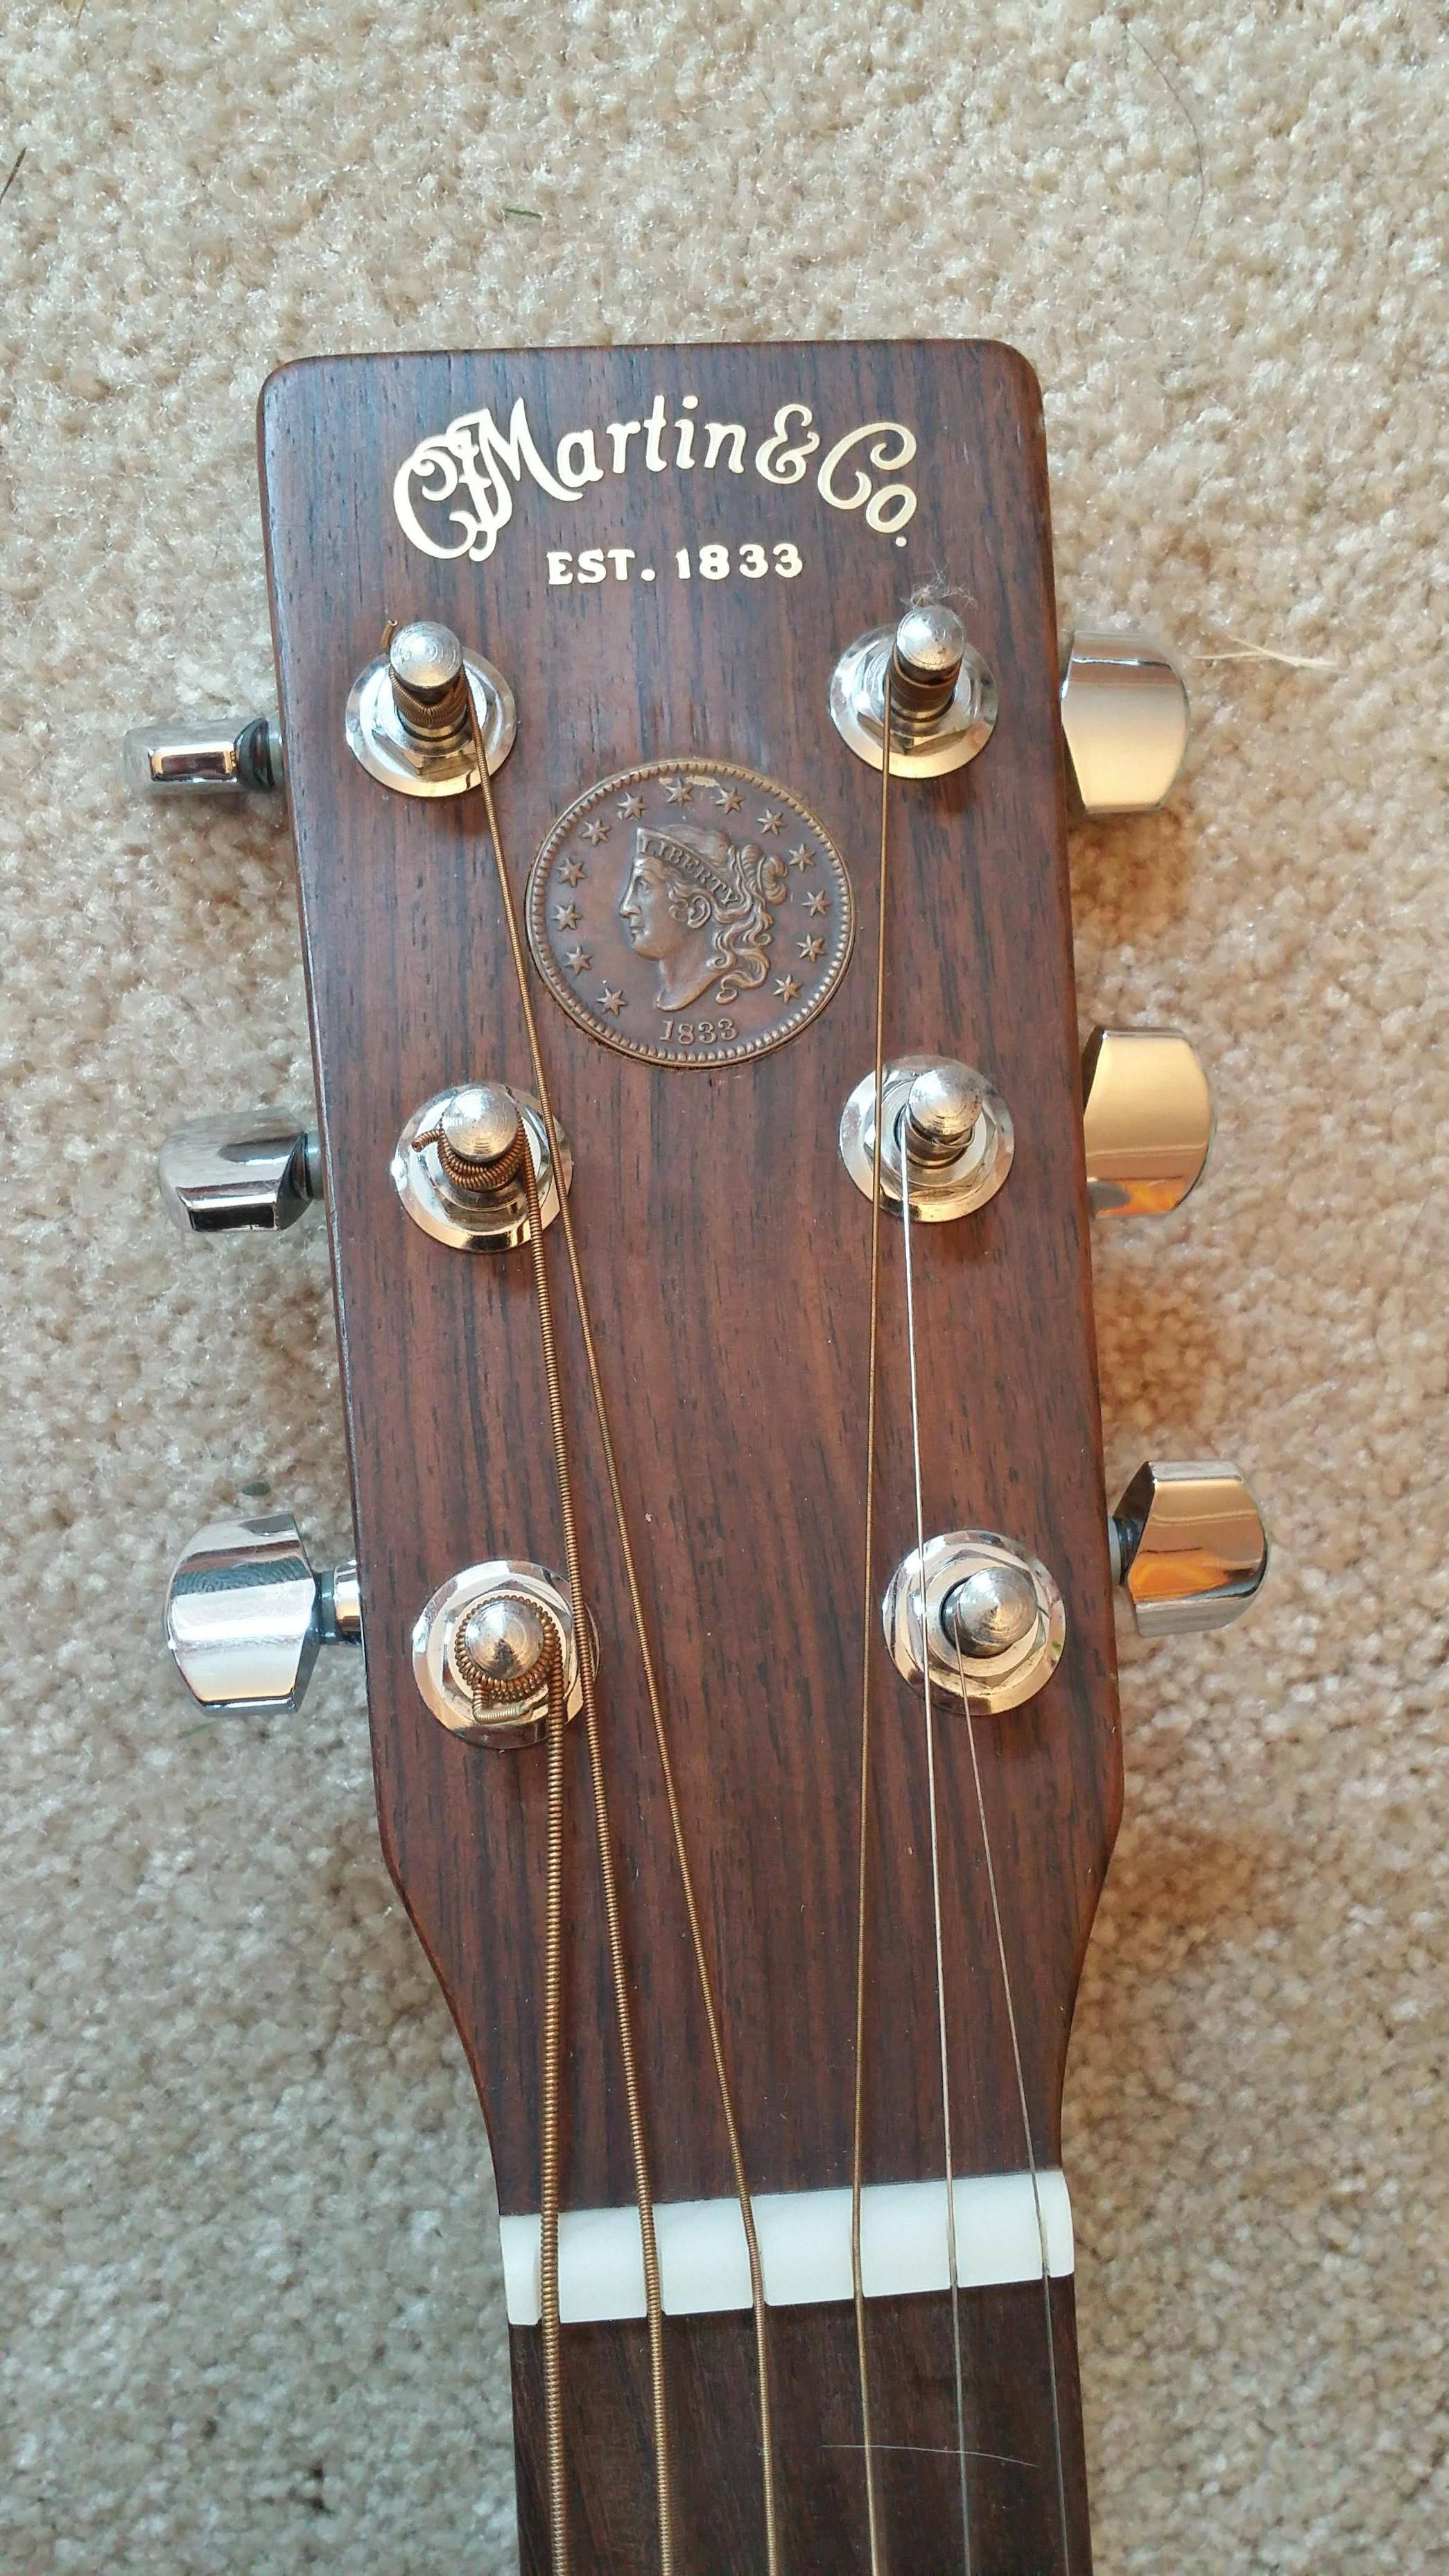 1833 Penny Inlaid In Martin Guitar Headstock Guitar Inlay Martin Guitar Acoustic Guitar